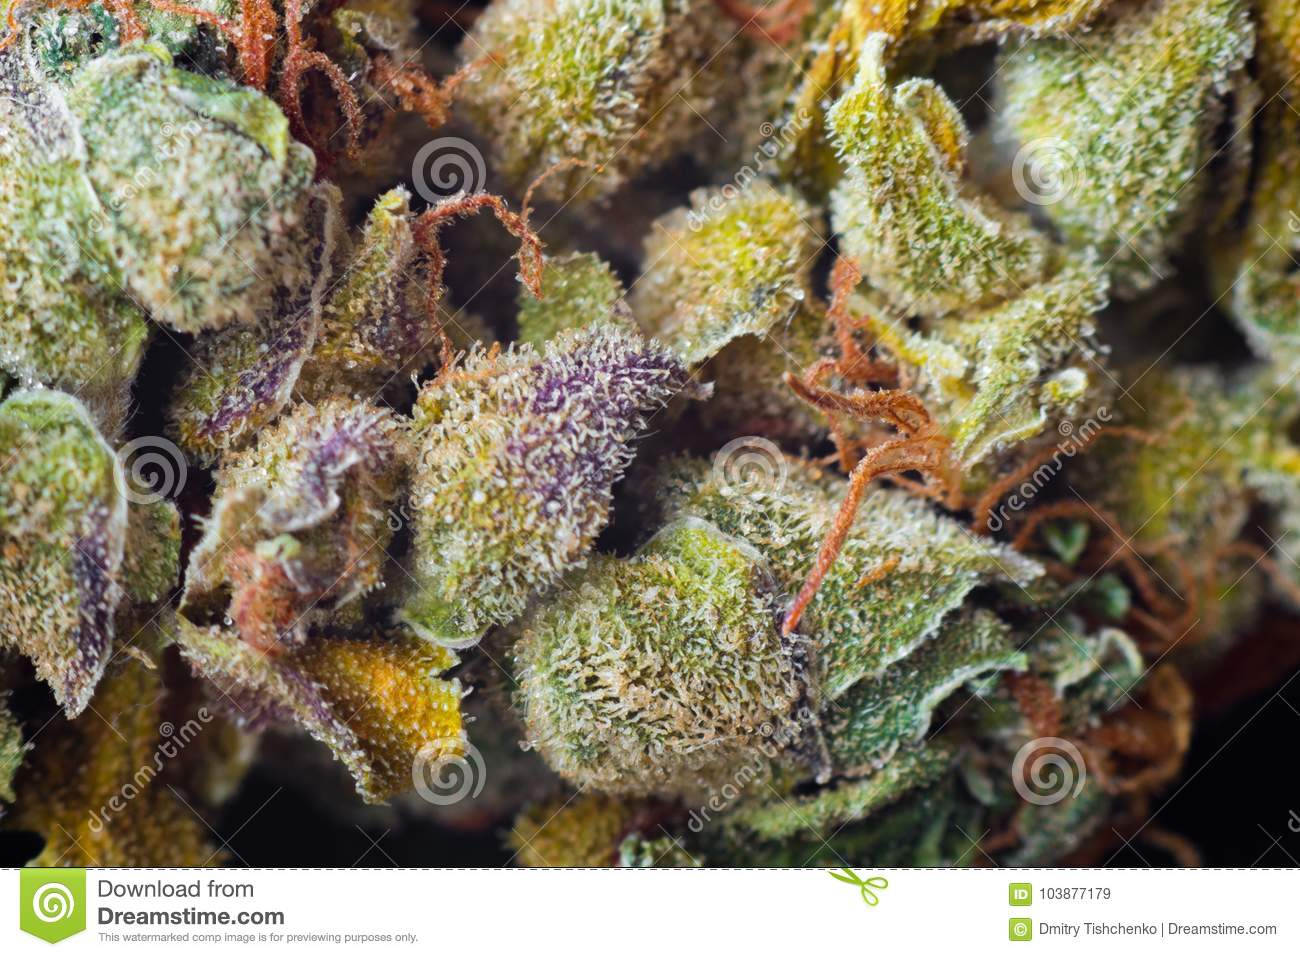 Macro photos of marijuana harvest cones with leaves covered with trichomes. The cannabis plant clse view.